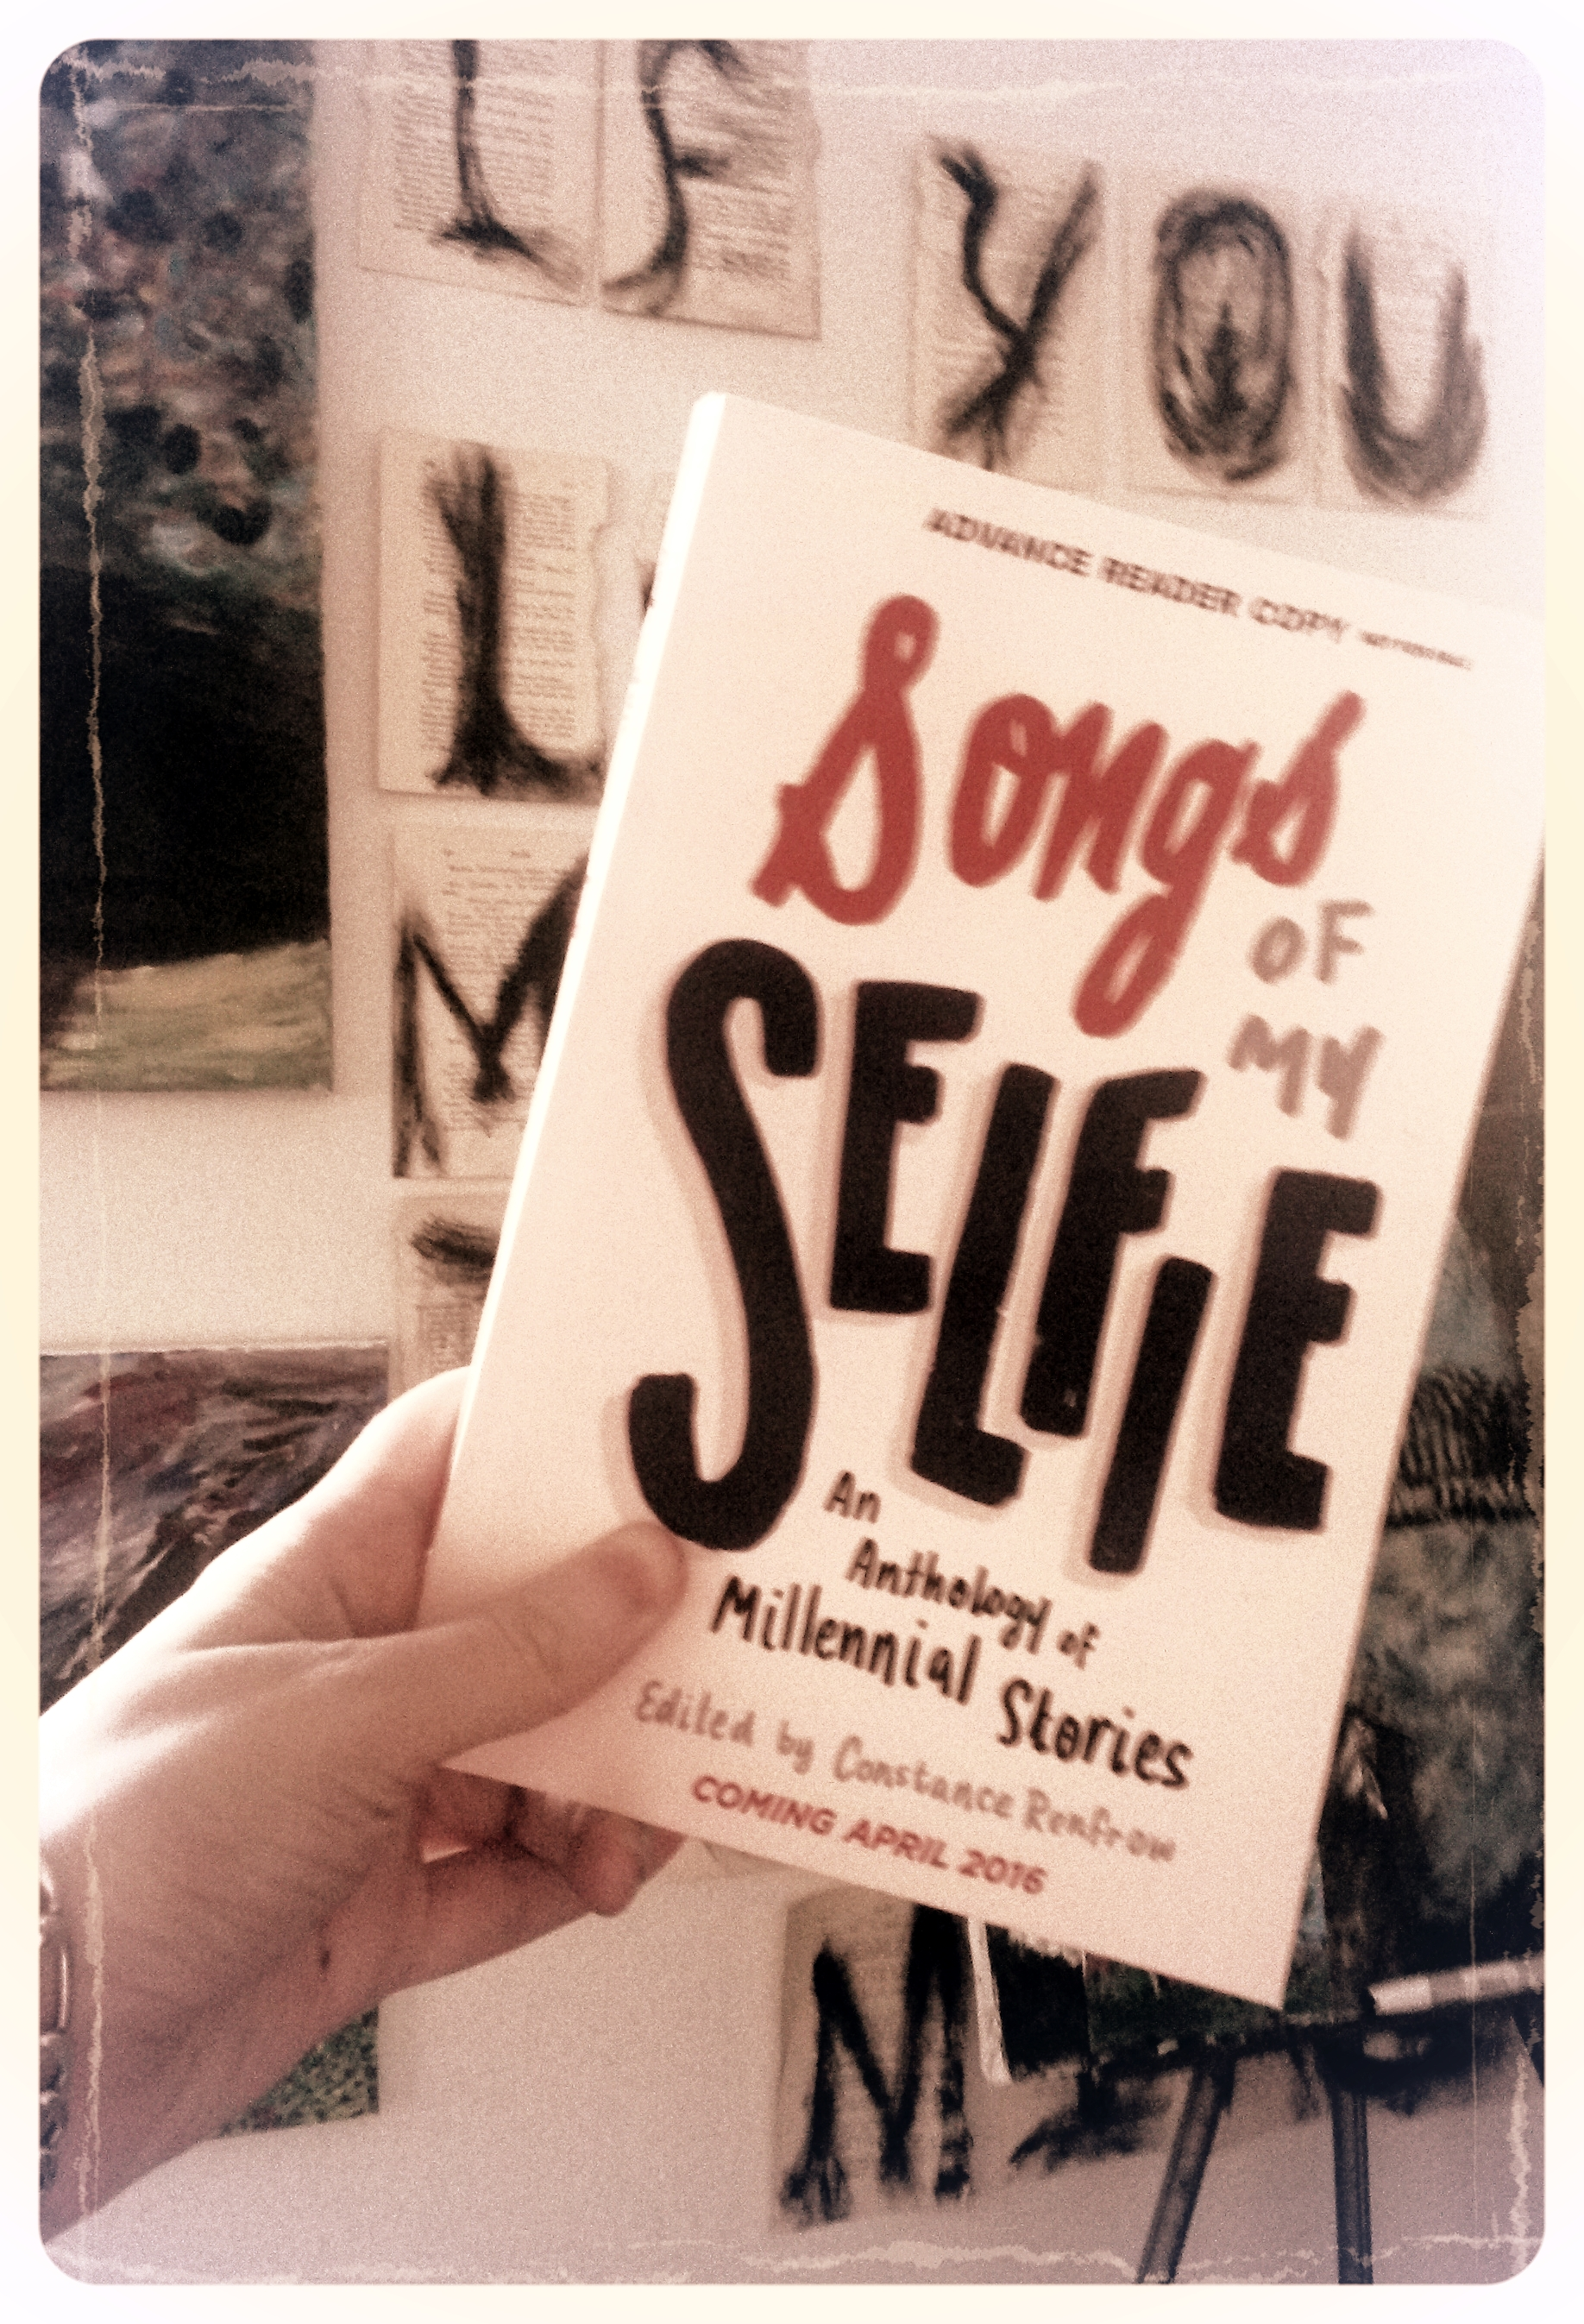 You too could have a shiny new copy of SONGS OF MY SELFIE.